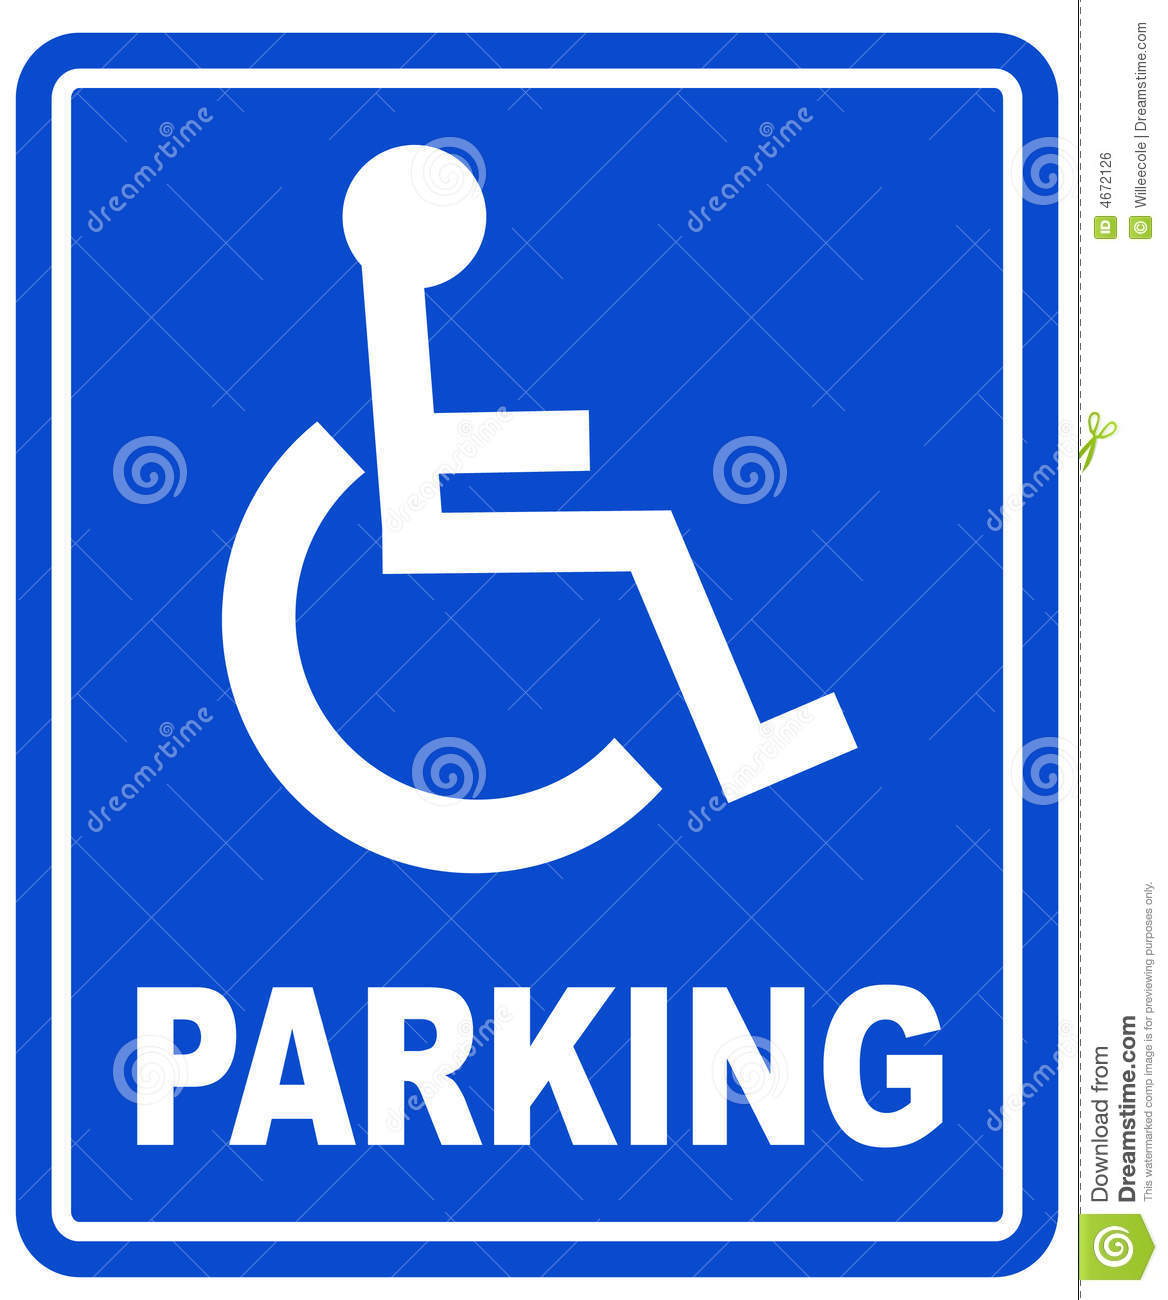 Handicap parking sign royalty free stock image image Handicapped wheelchair